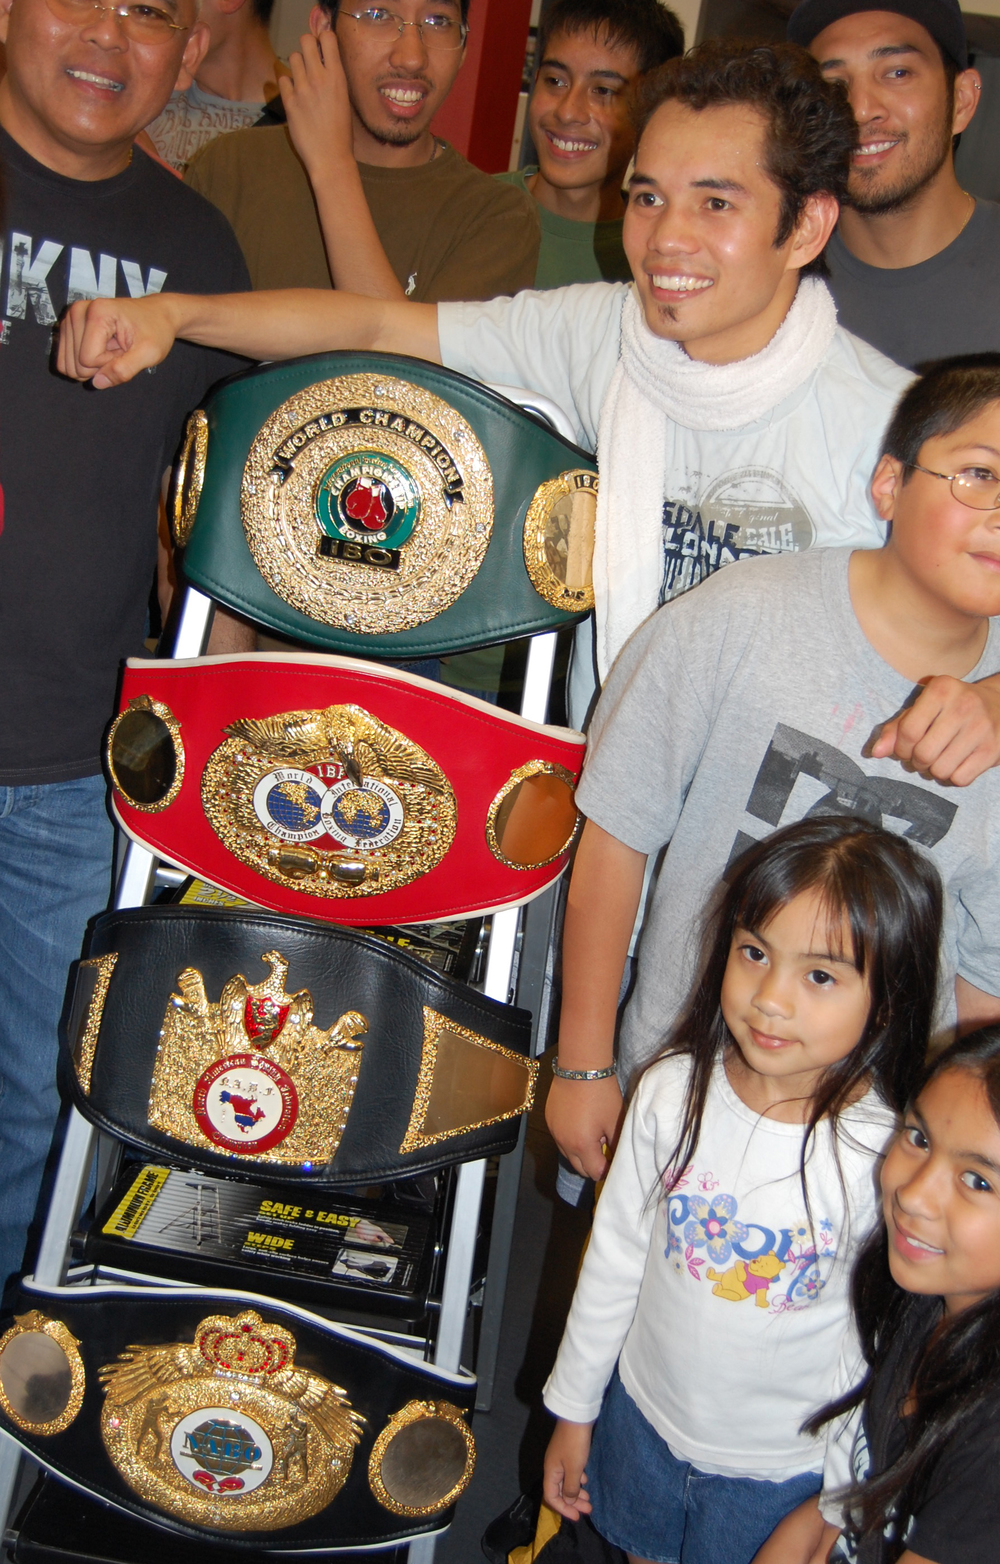 Nonito Donaire, Jr., shown here with fans, displays his championship belts. He retained his WBO super bantamweight title by knocking out Jorge Arce in the third round of their December 15, 2012 bout.   (Photo by Raymond Virata)